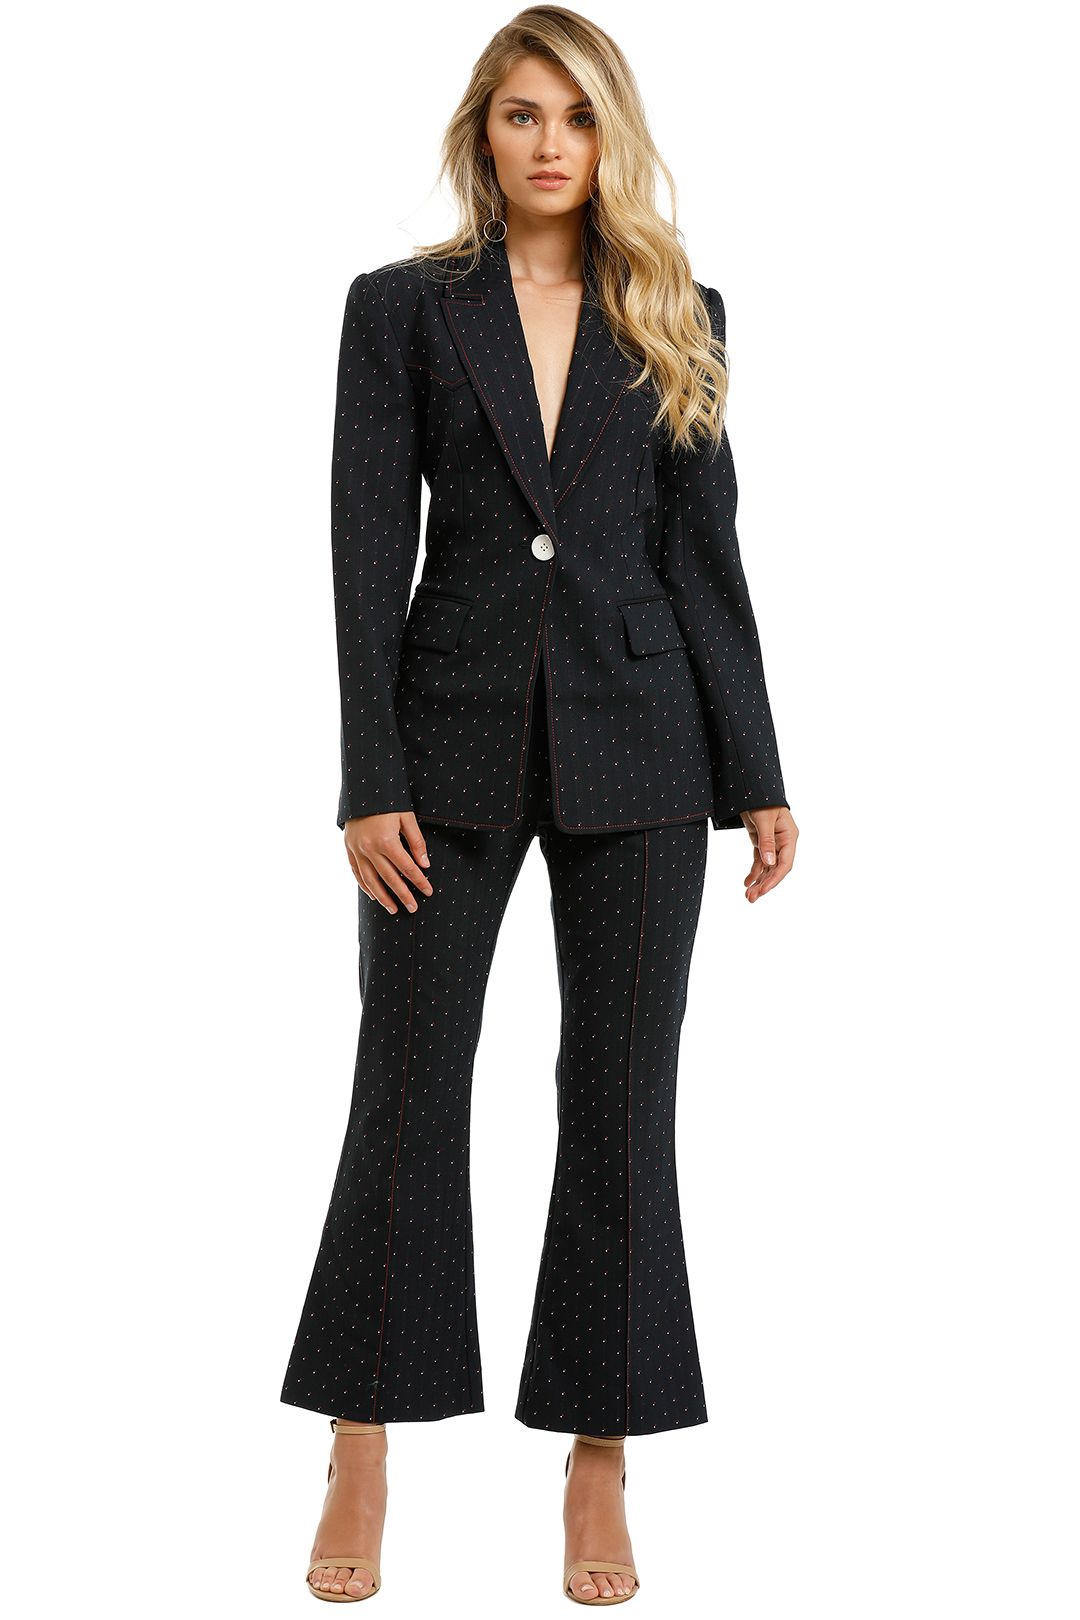 Lover-Jagger-Tailored-Jacket-and-Pant-Set-Navy-Front